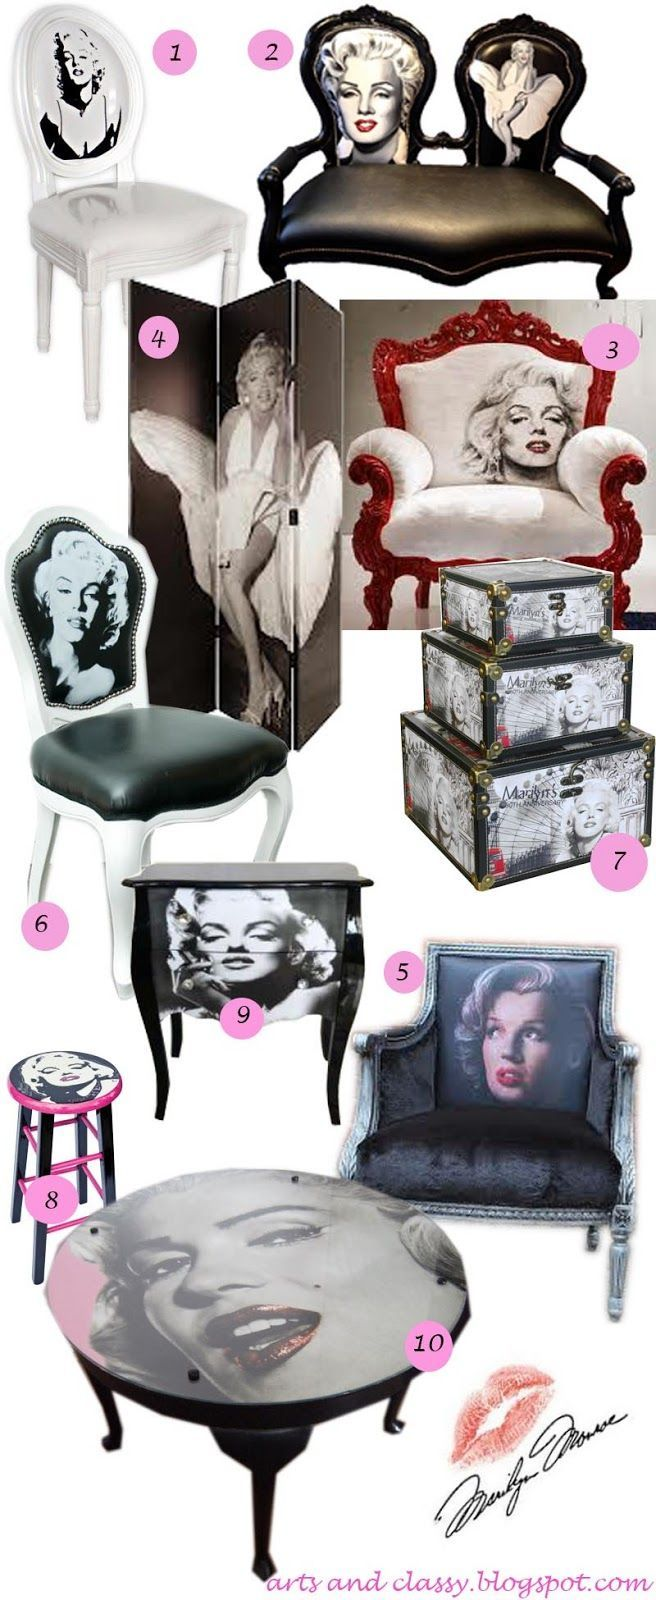 25 Best Ideas About Marilyn Monroe Decor On Pinterest Marilyn Monroe Bathroom Marilyn Monroe